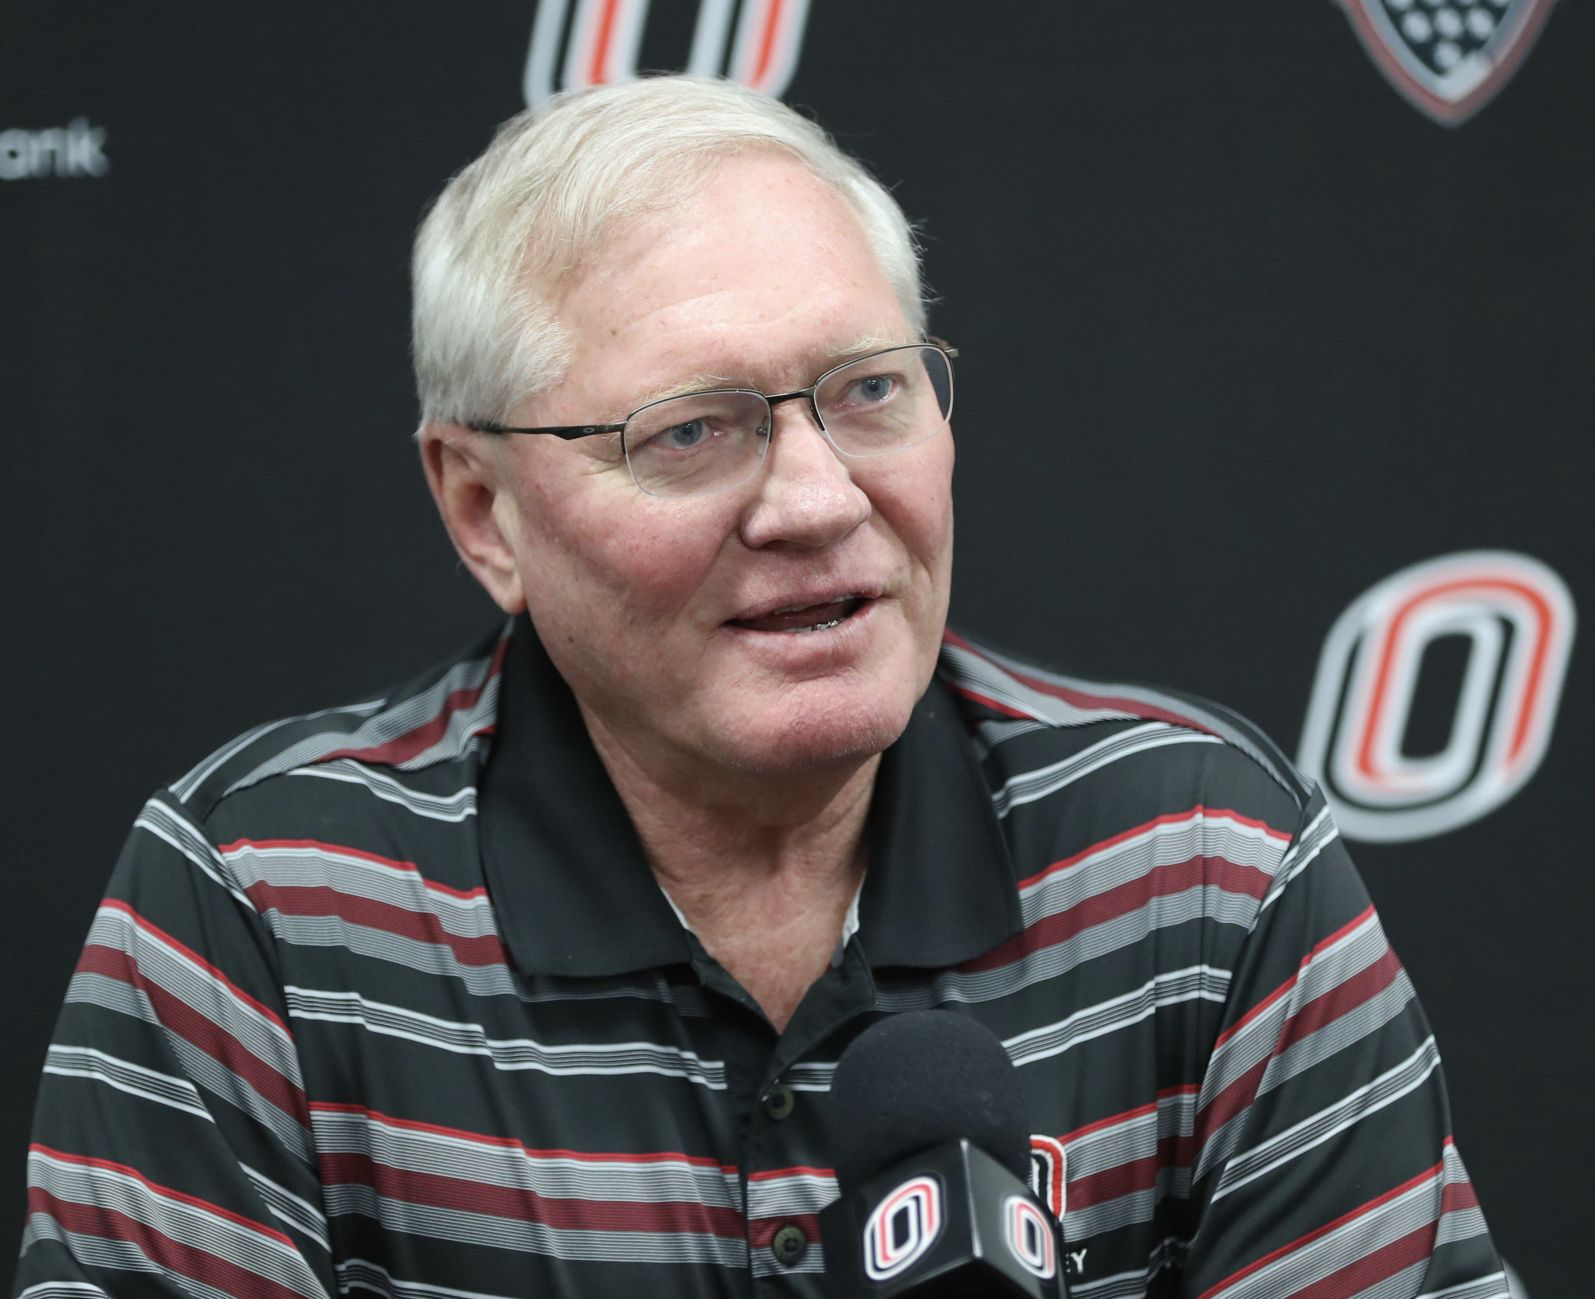 NCHC: 66-year-old UNO Coach Dean Blais Skates Off Into The Sunset After Leading Mav Program To New Heights In His Eight Seasons (video)